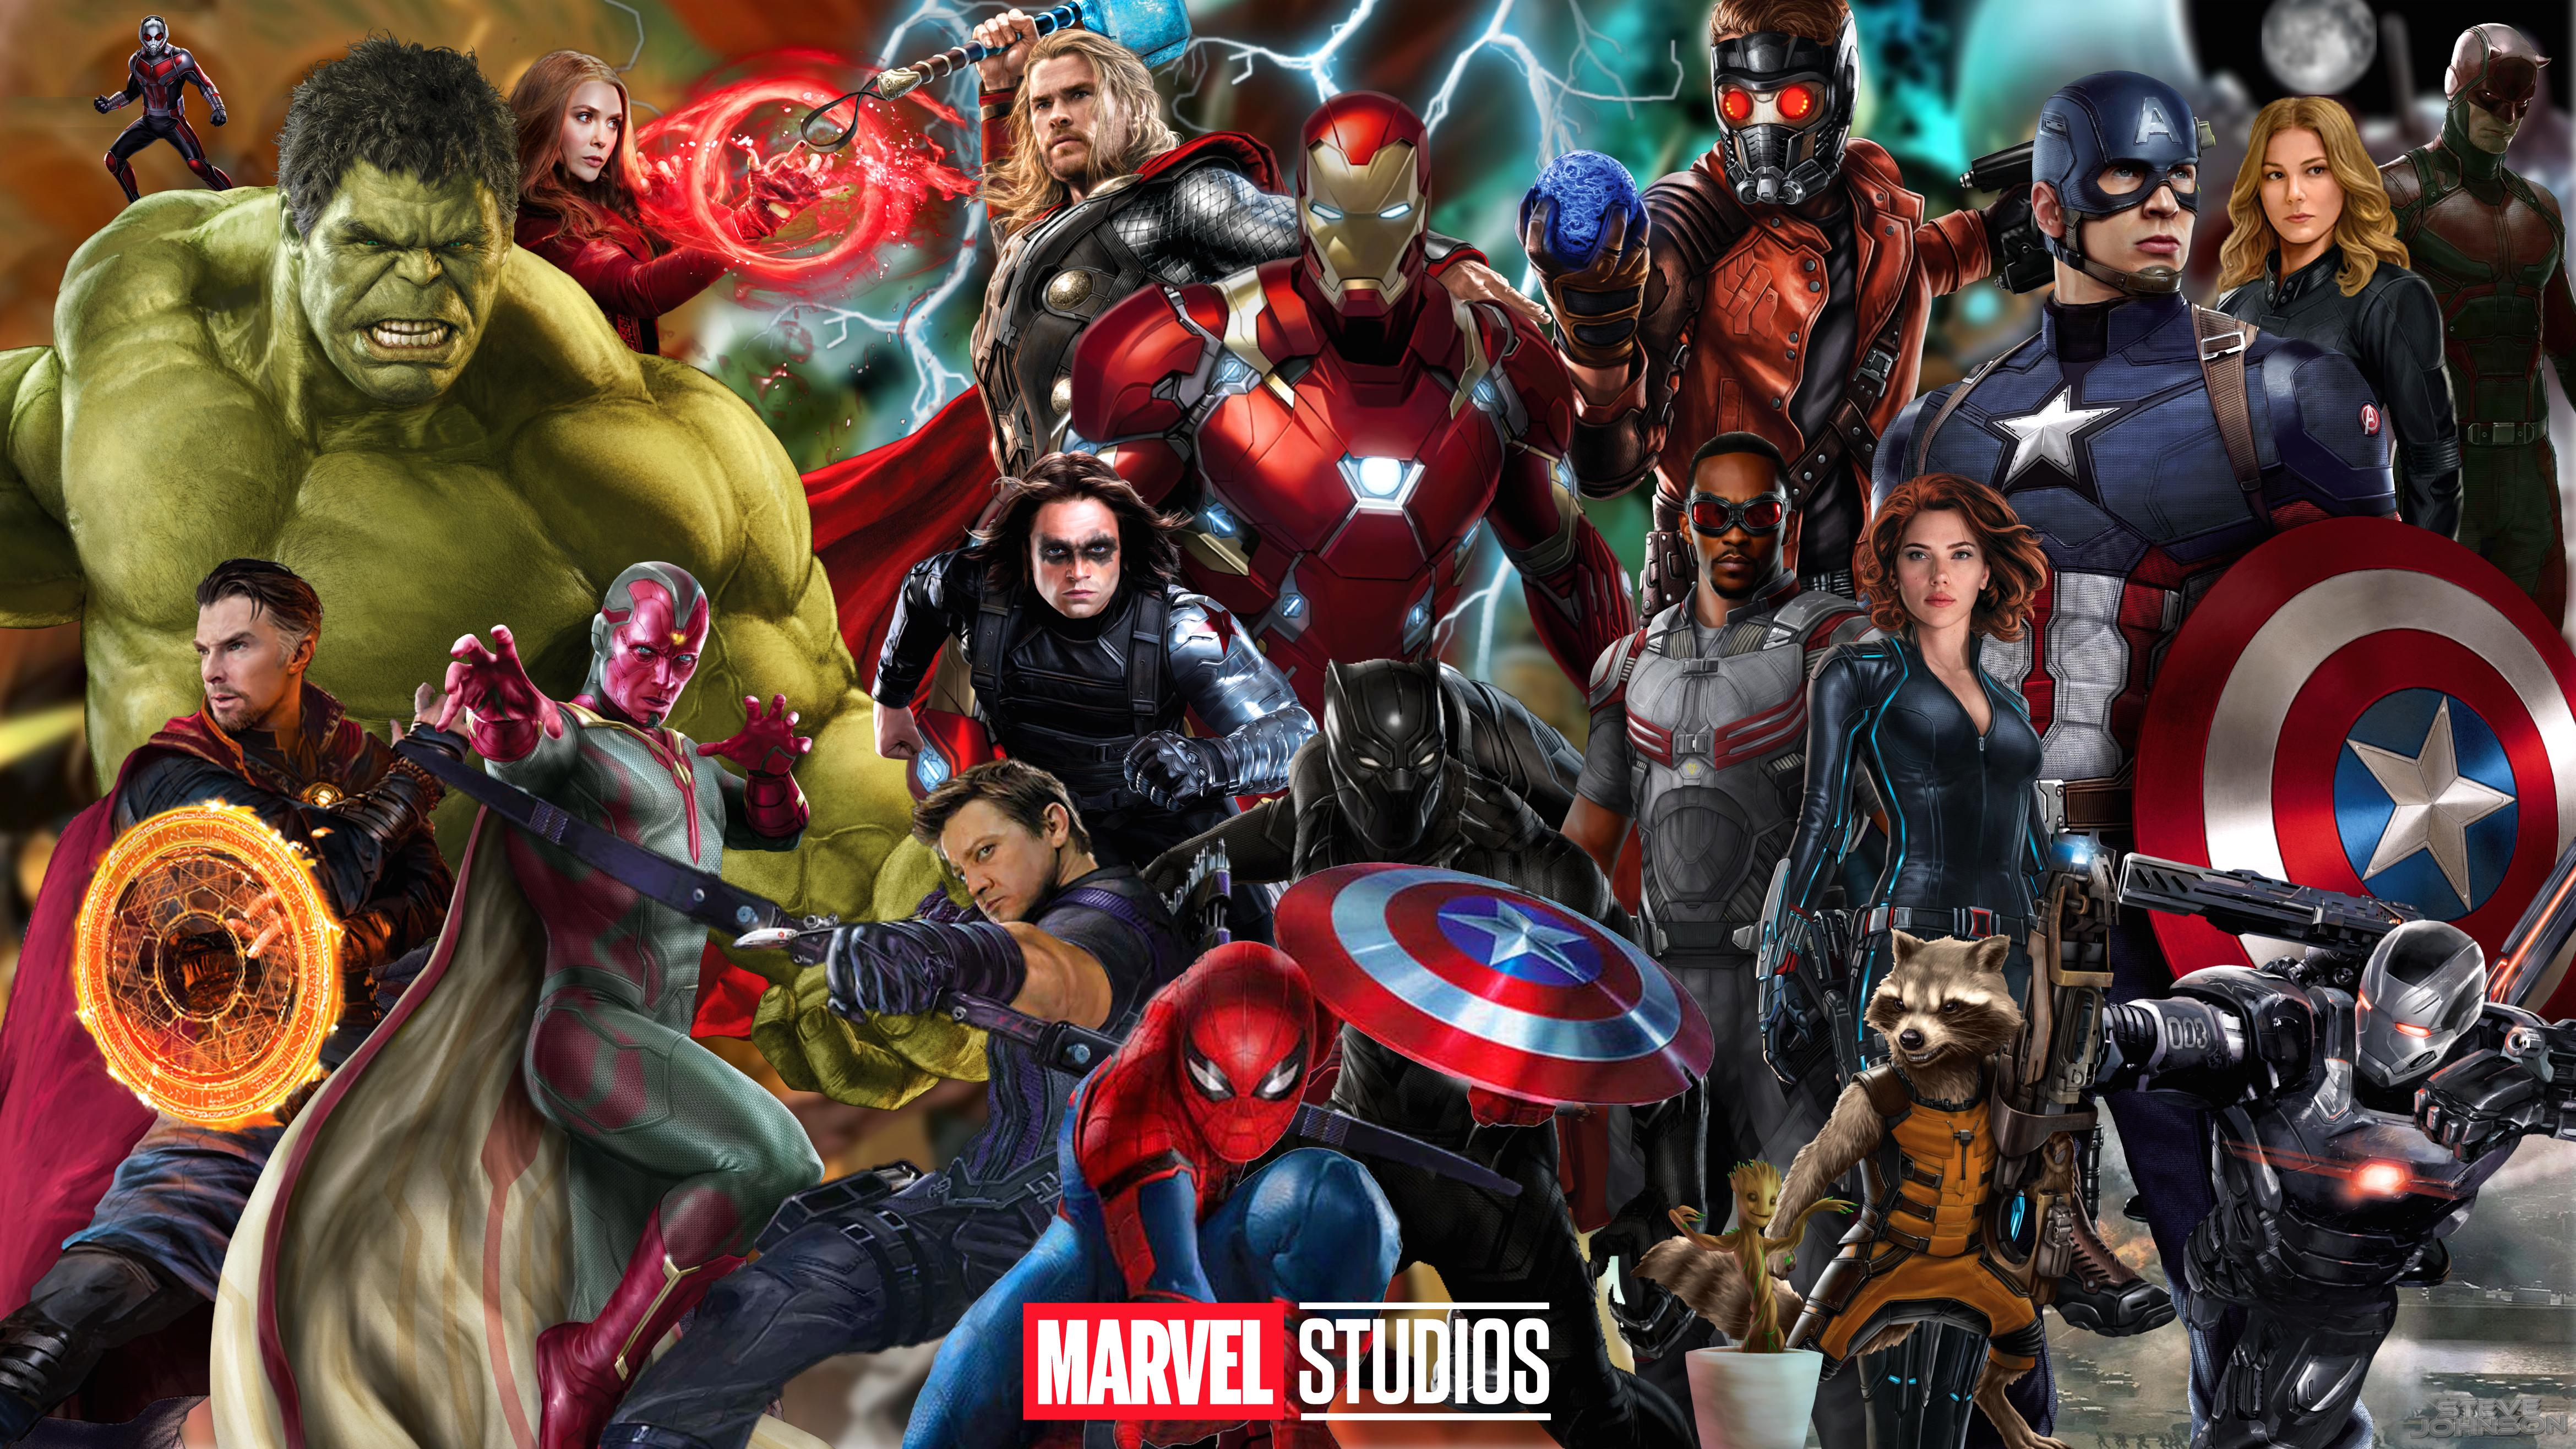 I made an MCU Wallpaper with the current Avengers Guardians 4679x2632